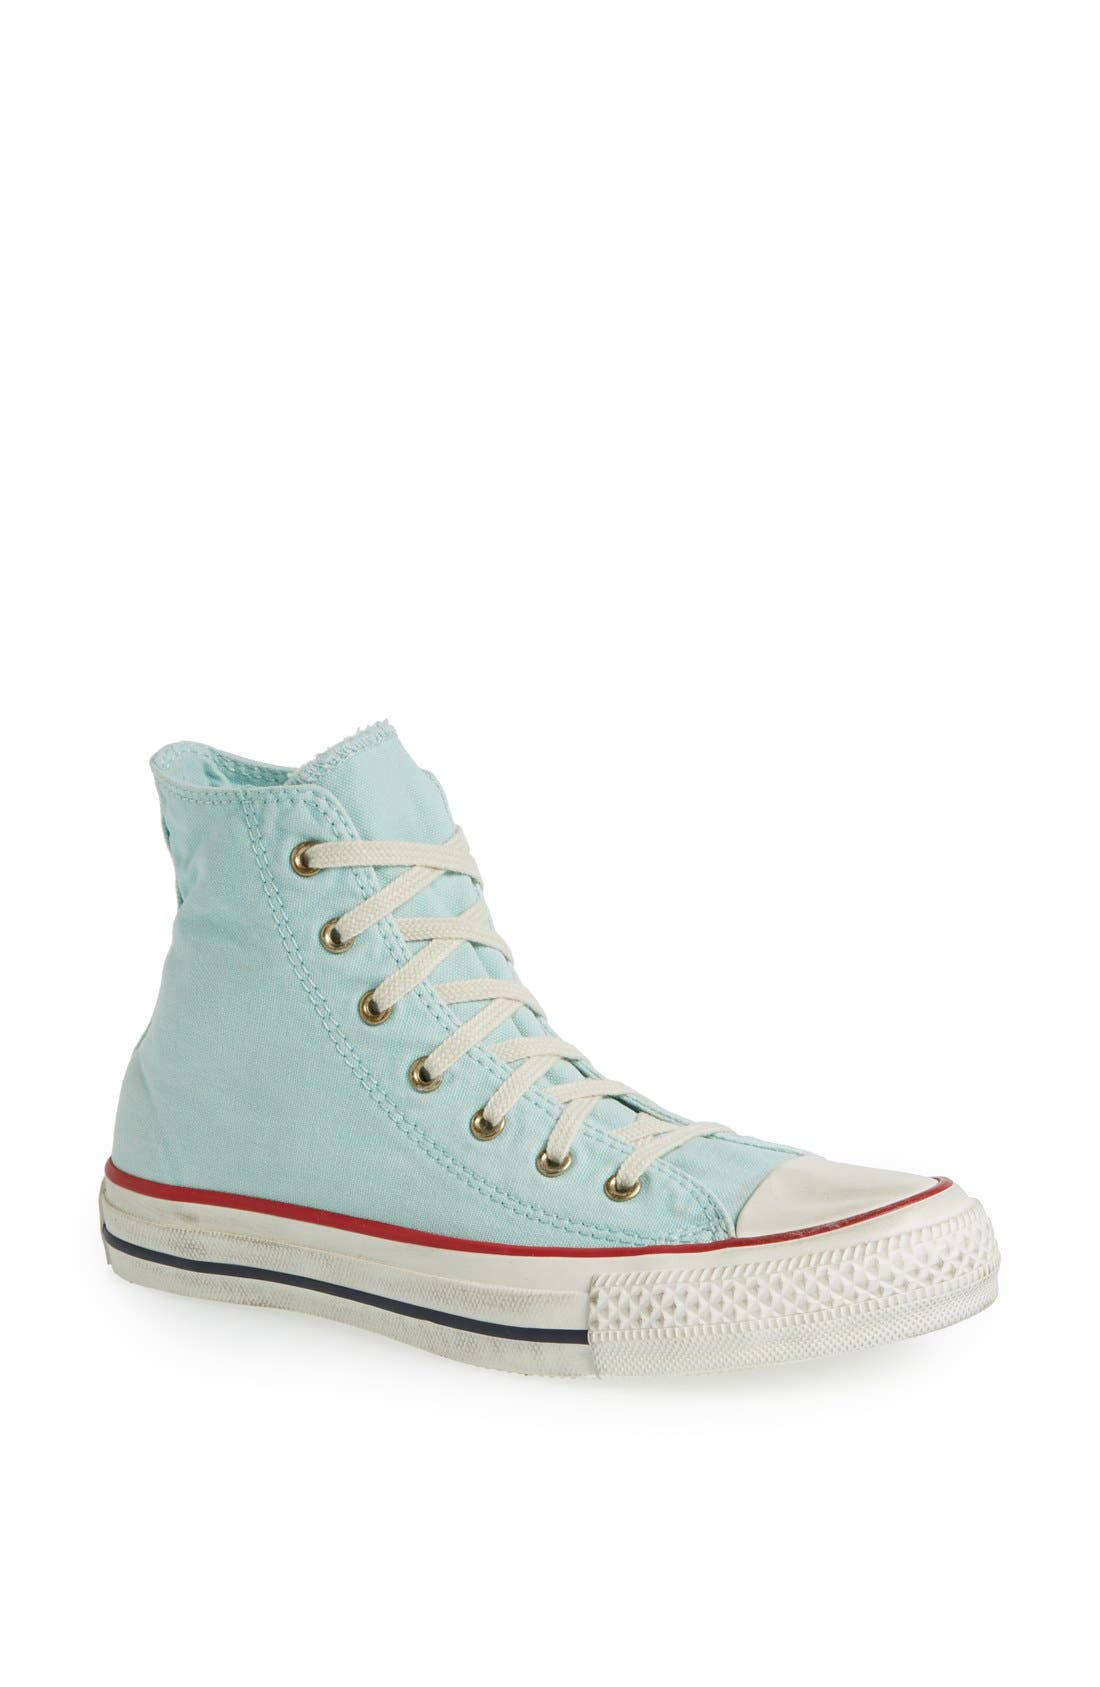 Main Image - Converse Chuck Taylor® All Star® Washed Canvas High Top Sneaker (Women)